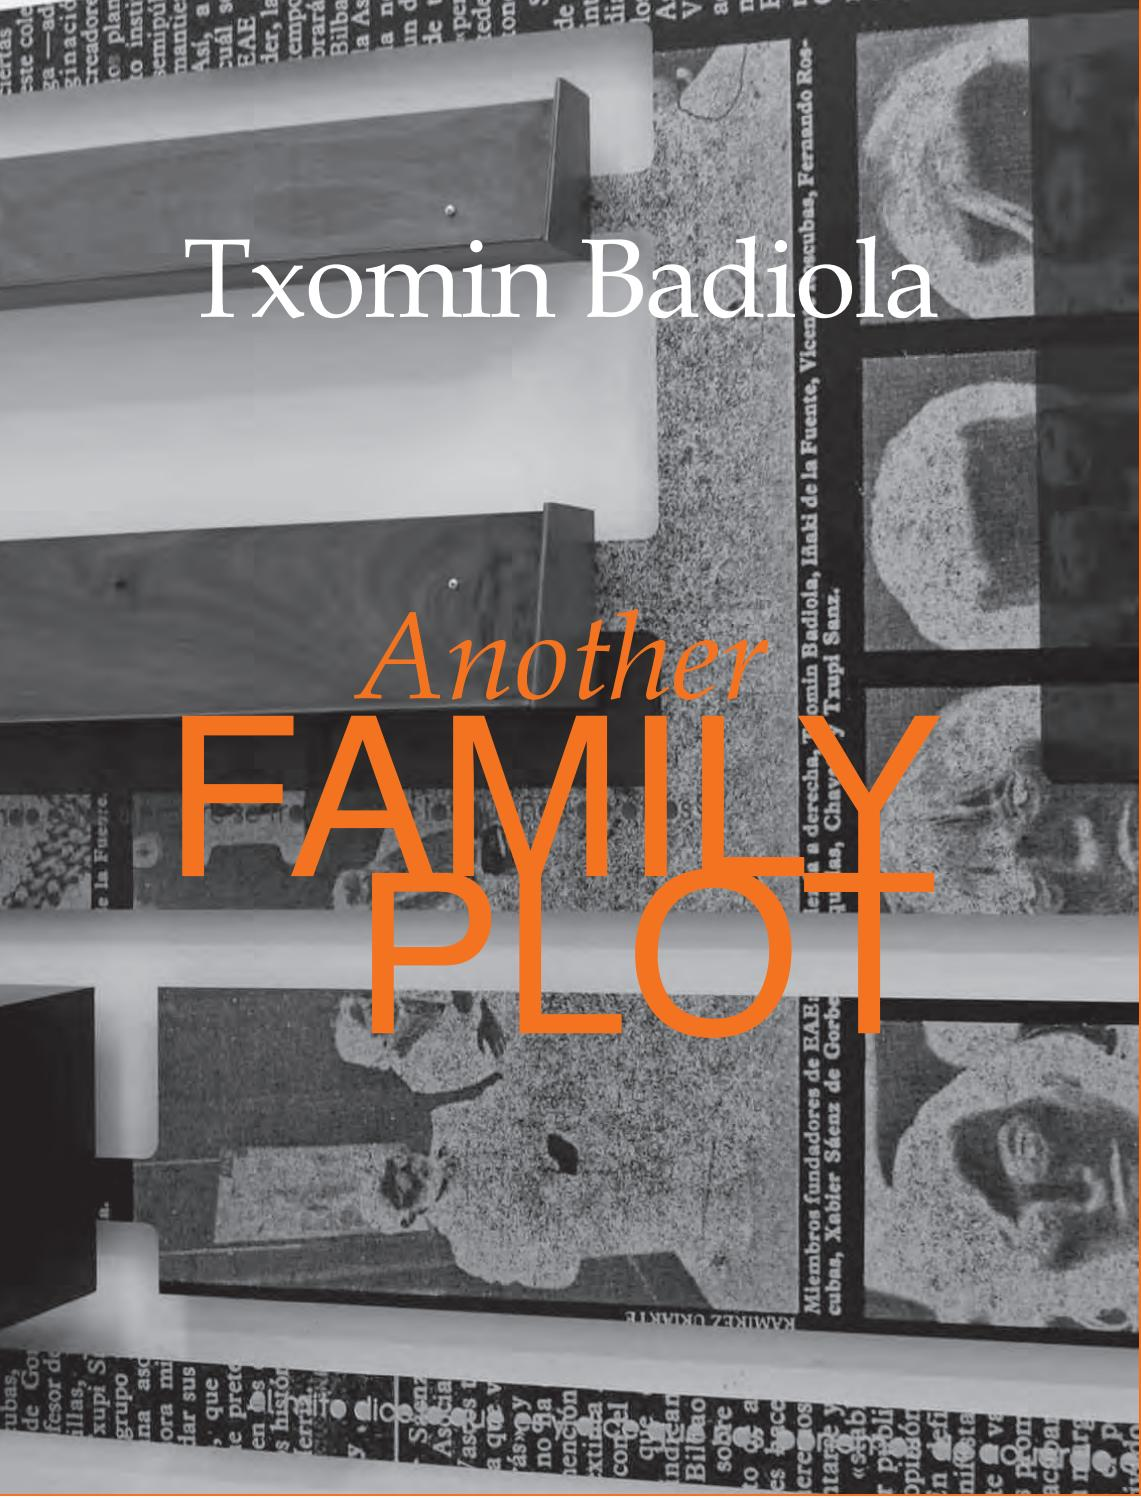 Grafilur Arte Grafico Txomin Badiola Another Family Plot By Museo Reina Sofía Issuu